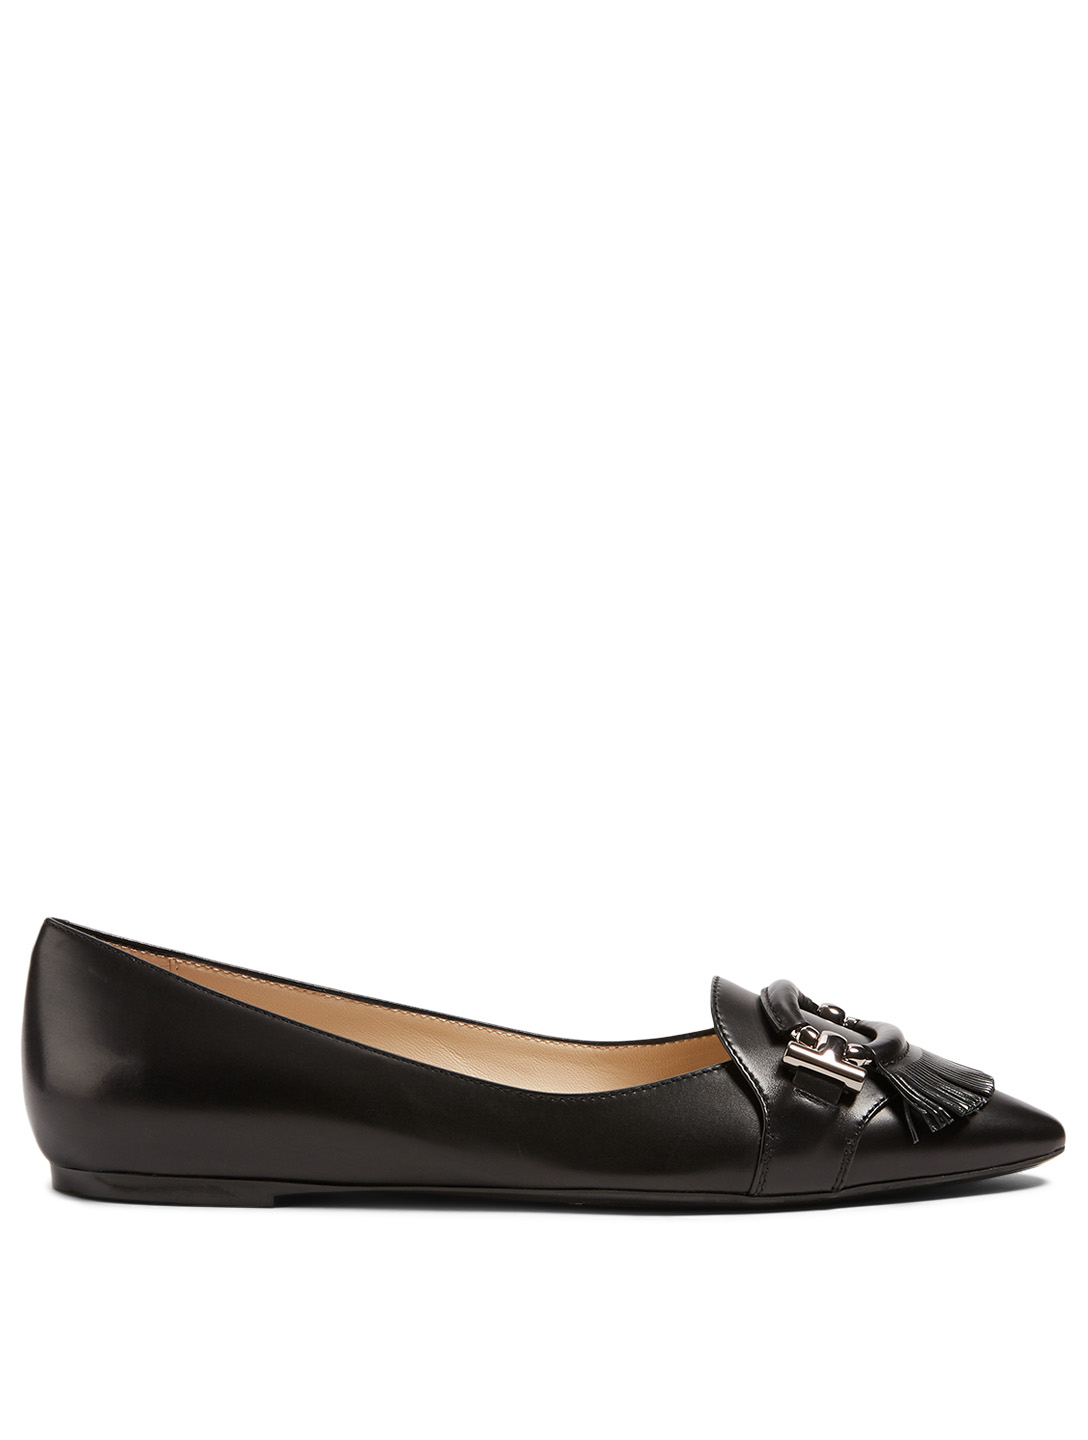 TOD'S T-Ring Leather Ballet Flats Women's Black